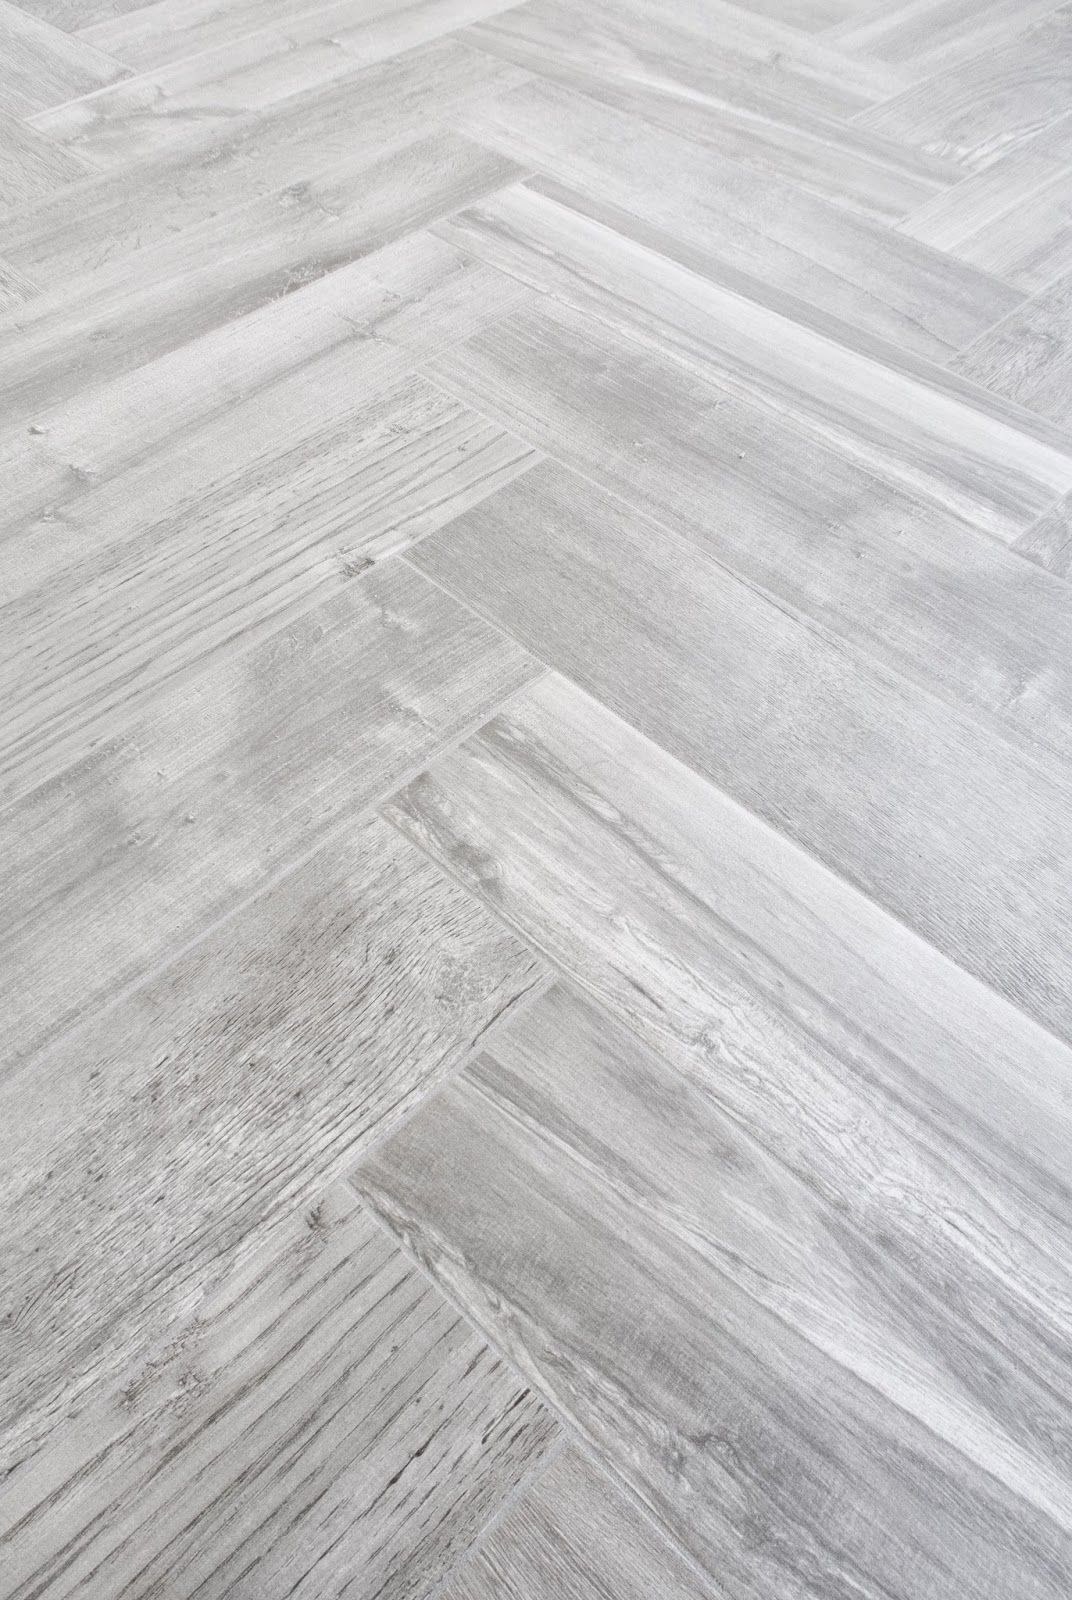 The Herringbone Pattern Is Beautiful And We Are Going To Show You How To Get The Exact Same Look When Laying Herringbone Tile Floors Herringbone Tile Flooring